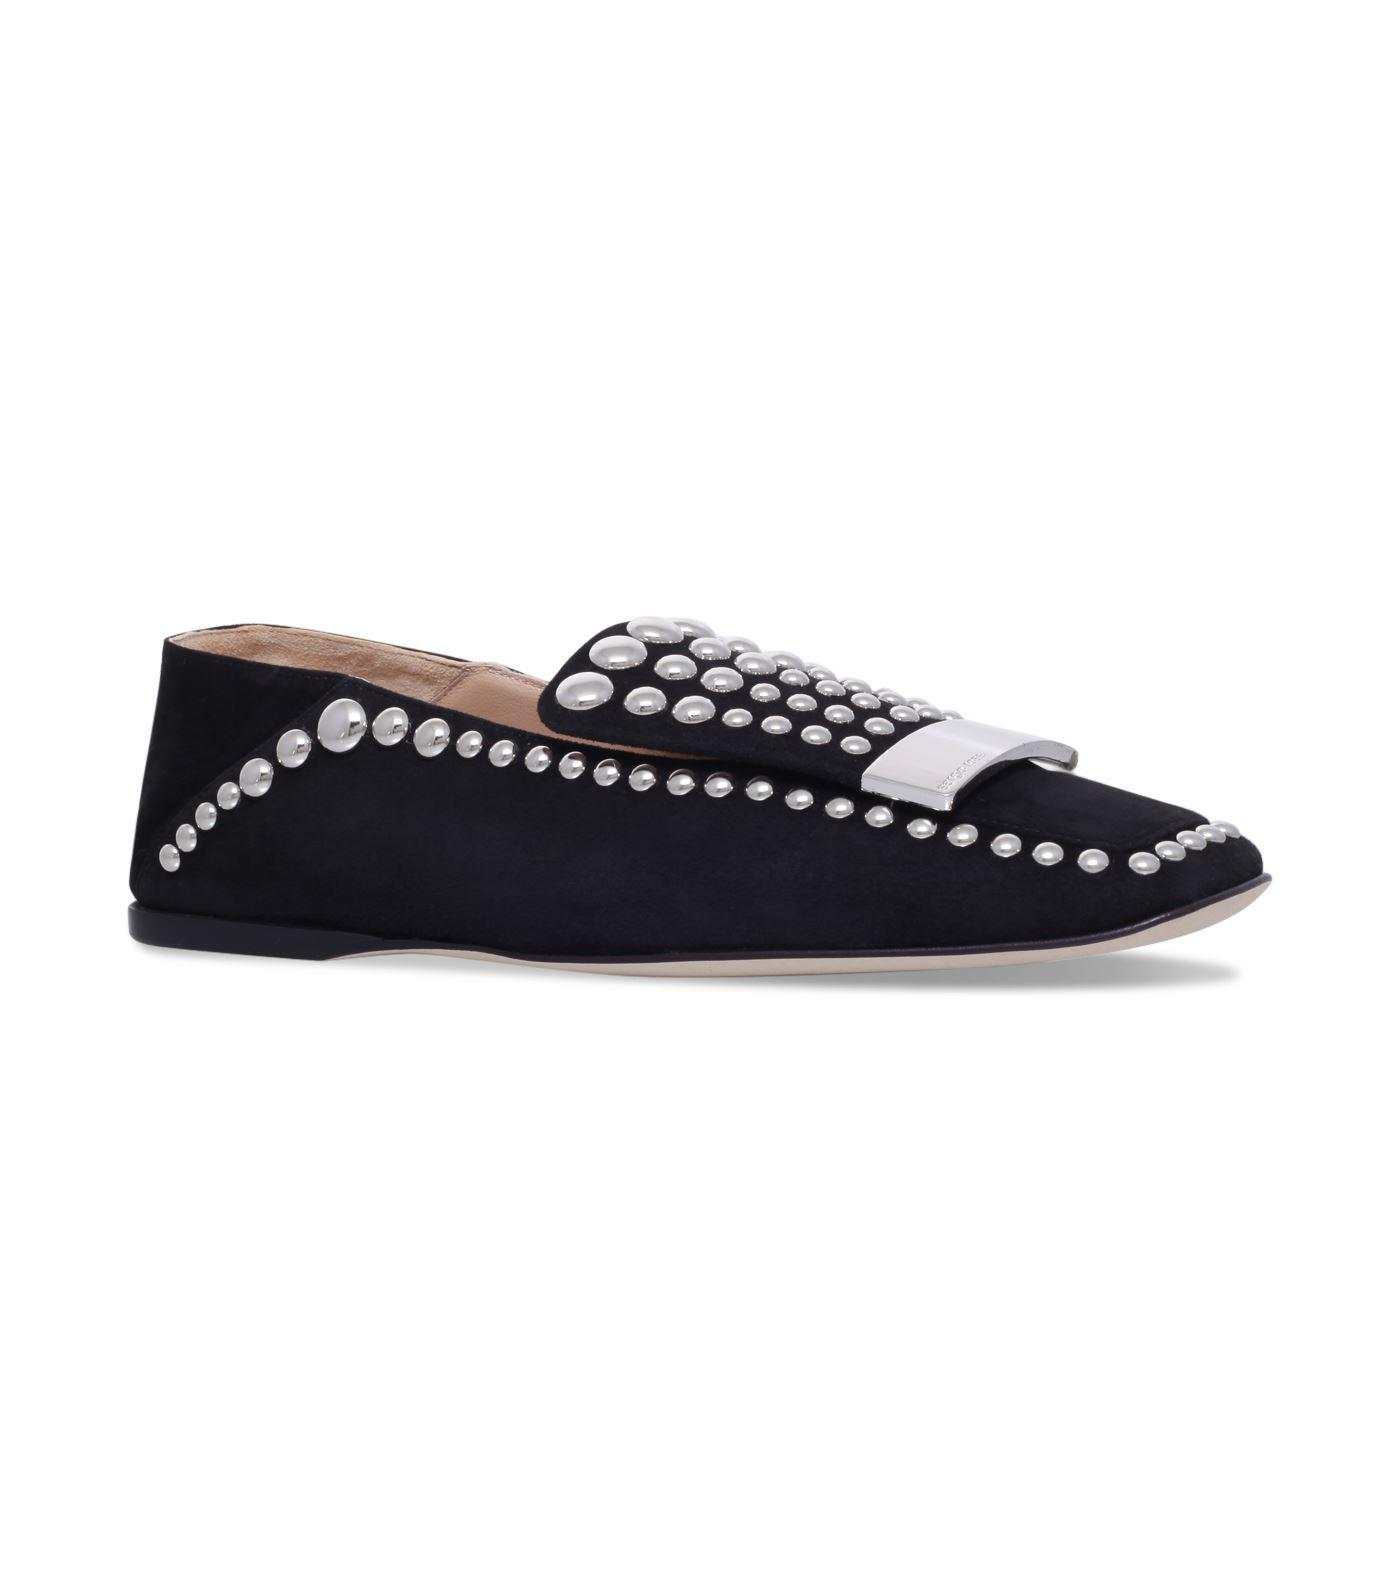 Pay With Visa For Sale Buy Cheap Cheap brooch embellished slip-on loafers - Black Sergio Rossi Sale Footlocker Pictures Sale Footlocker Finishline 2018 New For Sale IRNidThW